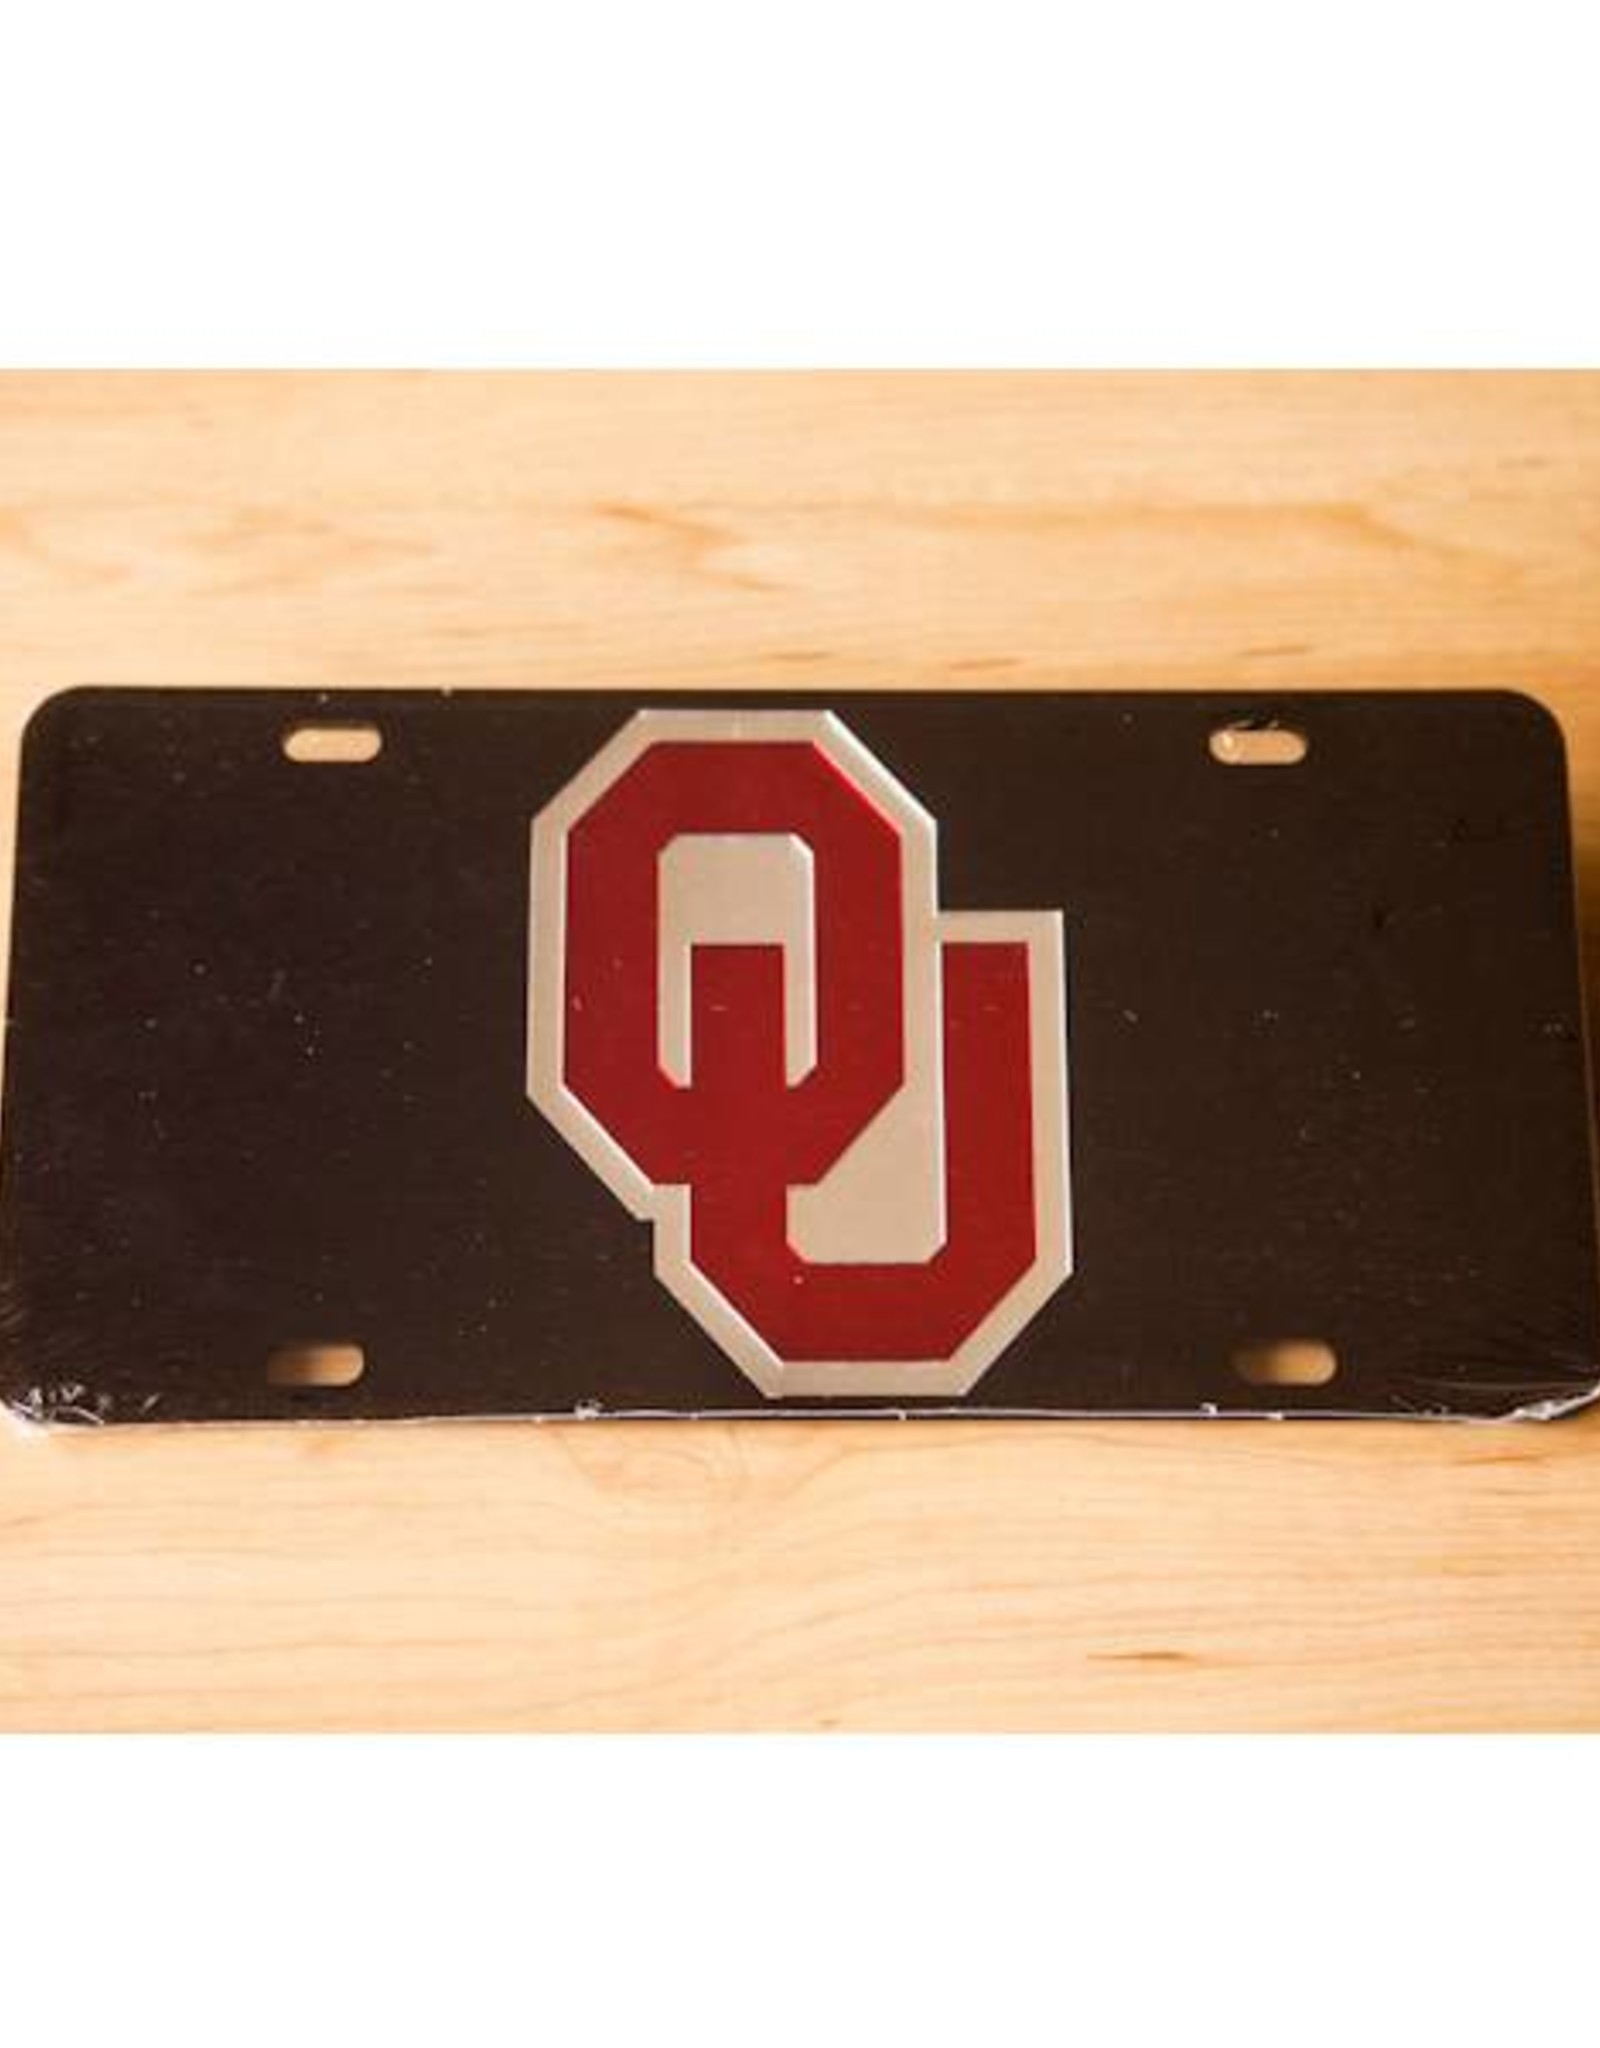 Craftique Craftique OU Crimson & Silver/Black Mirrored License Plate